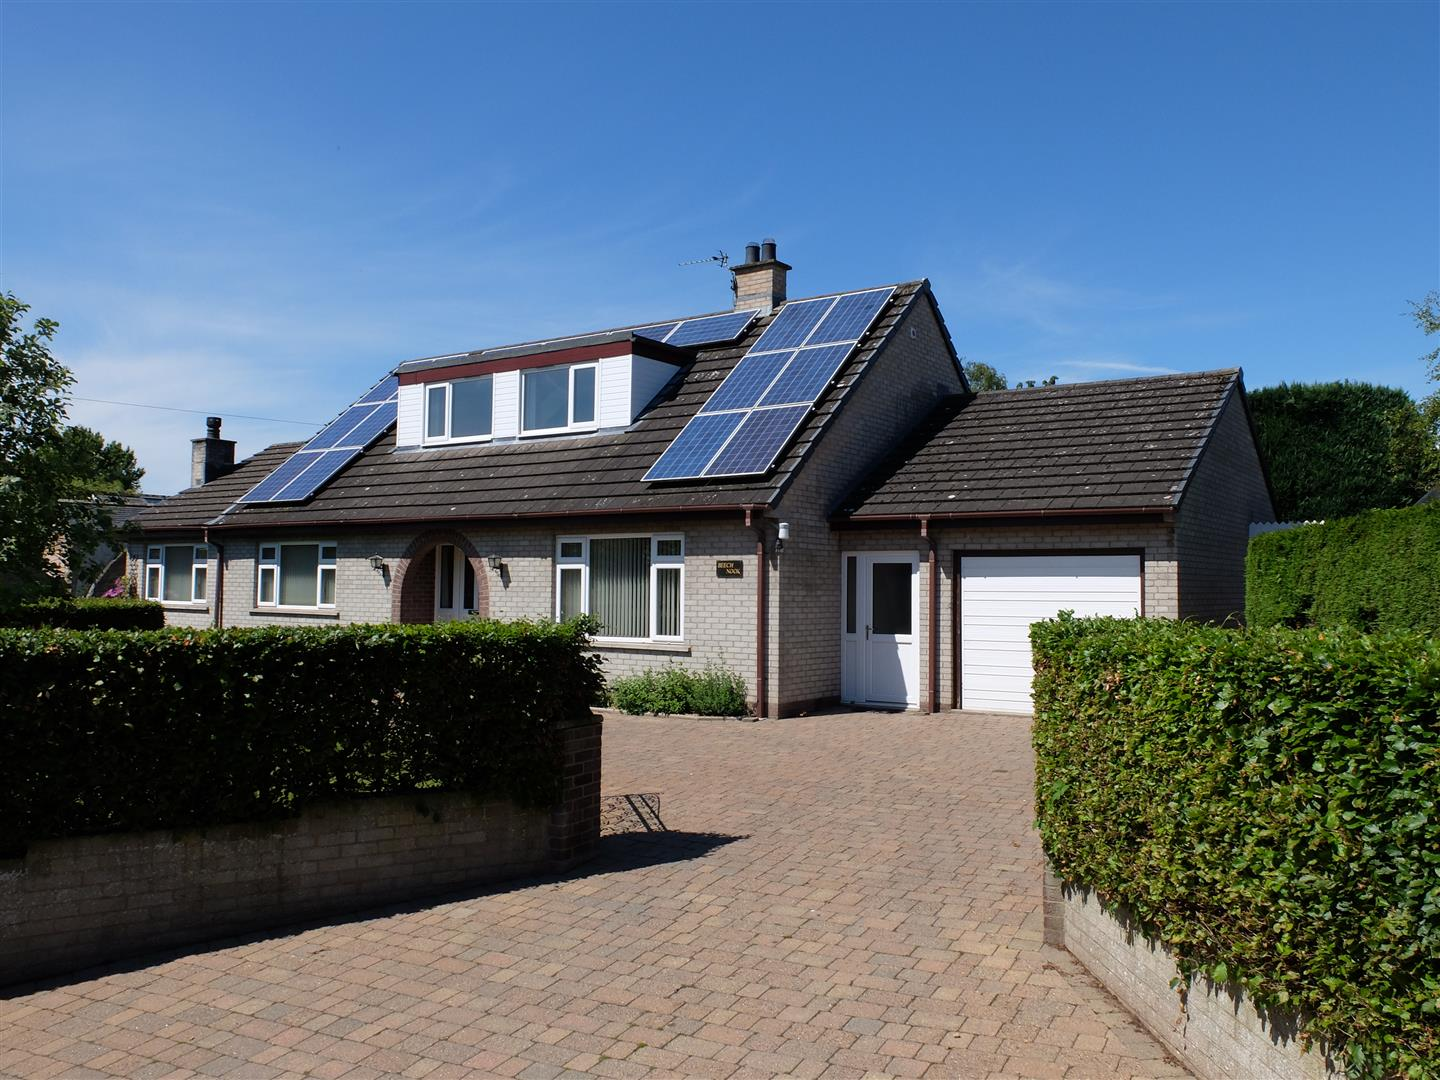 Beech Nook Lonning Foot Carlisle 4 Bedrooms Bungalow - Detached For Sale